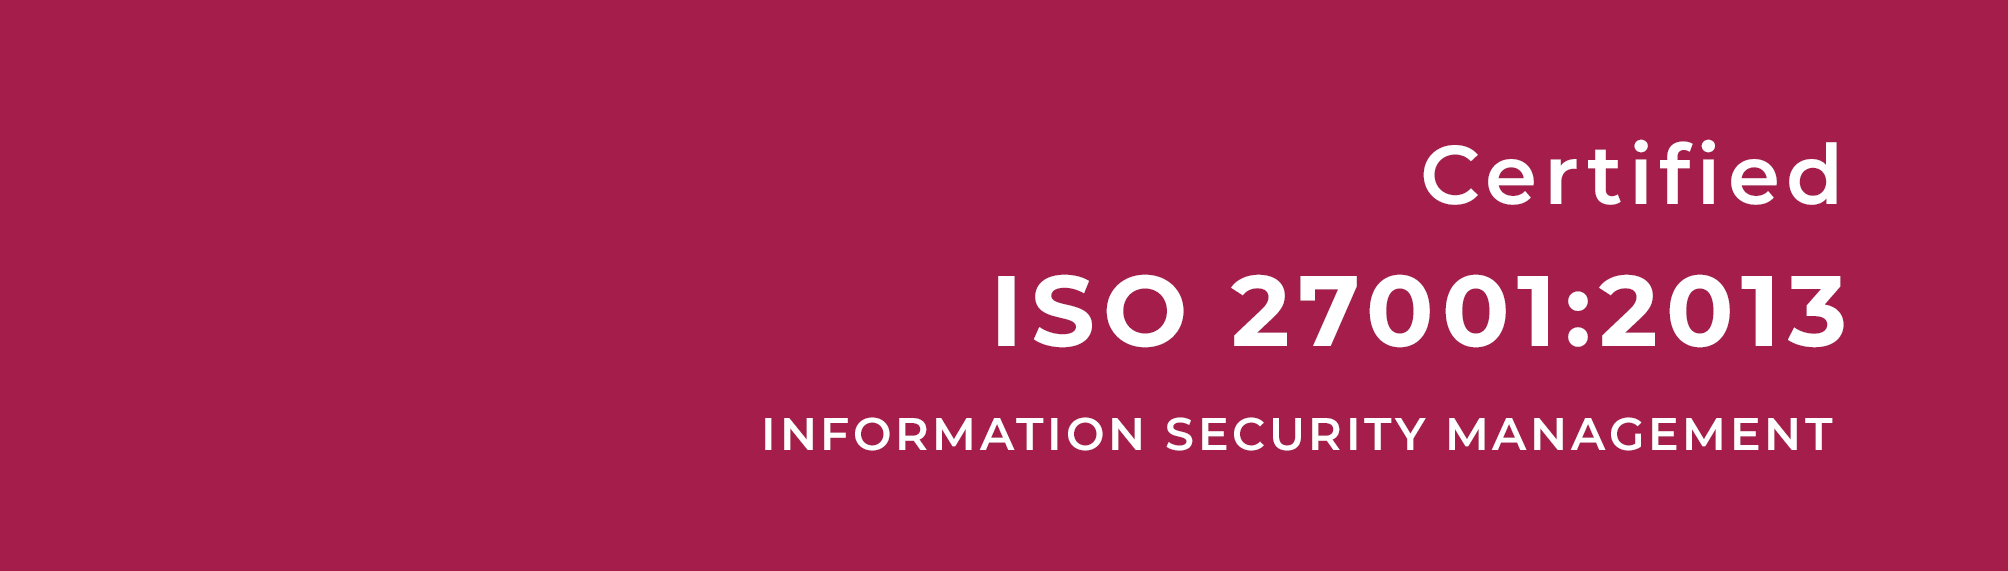 Certified ISO 27001:2013 Information Security Management